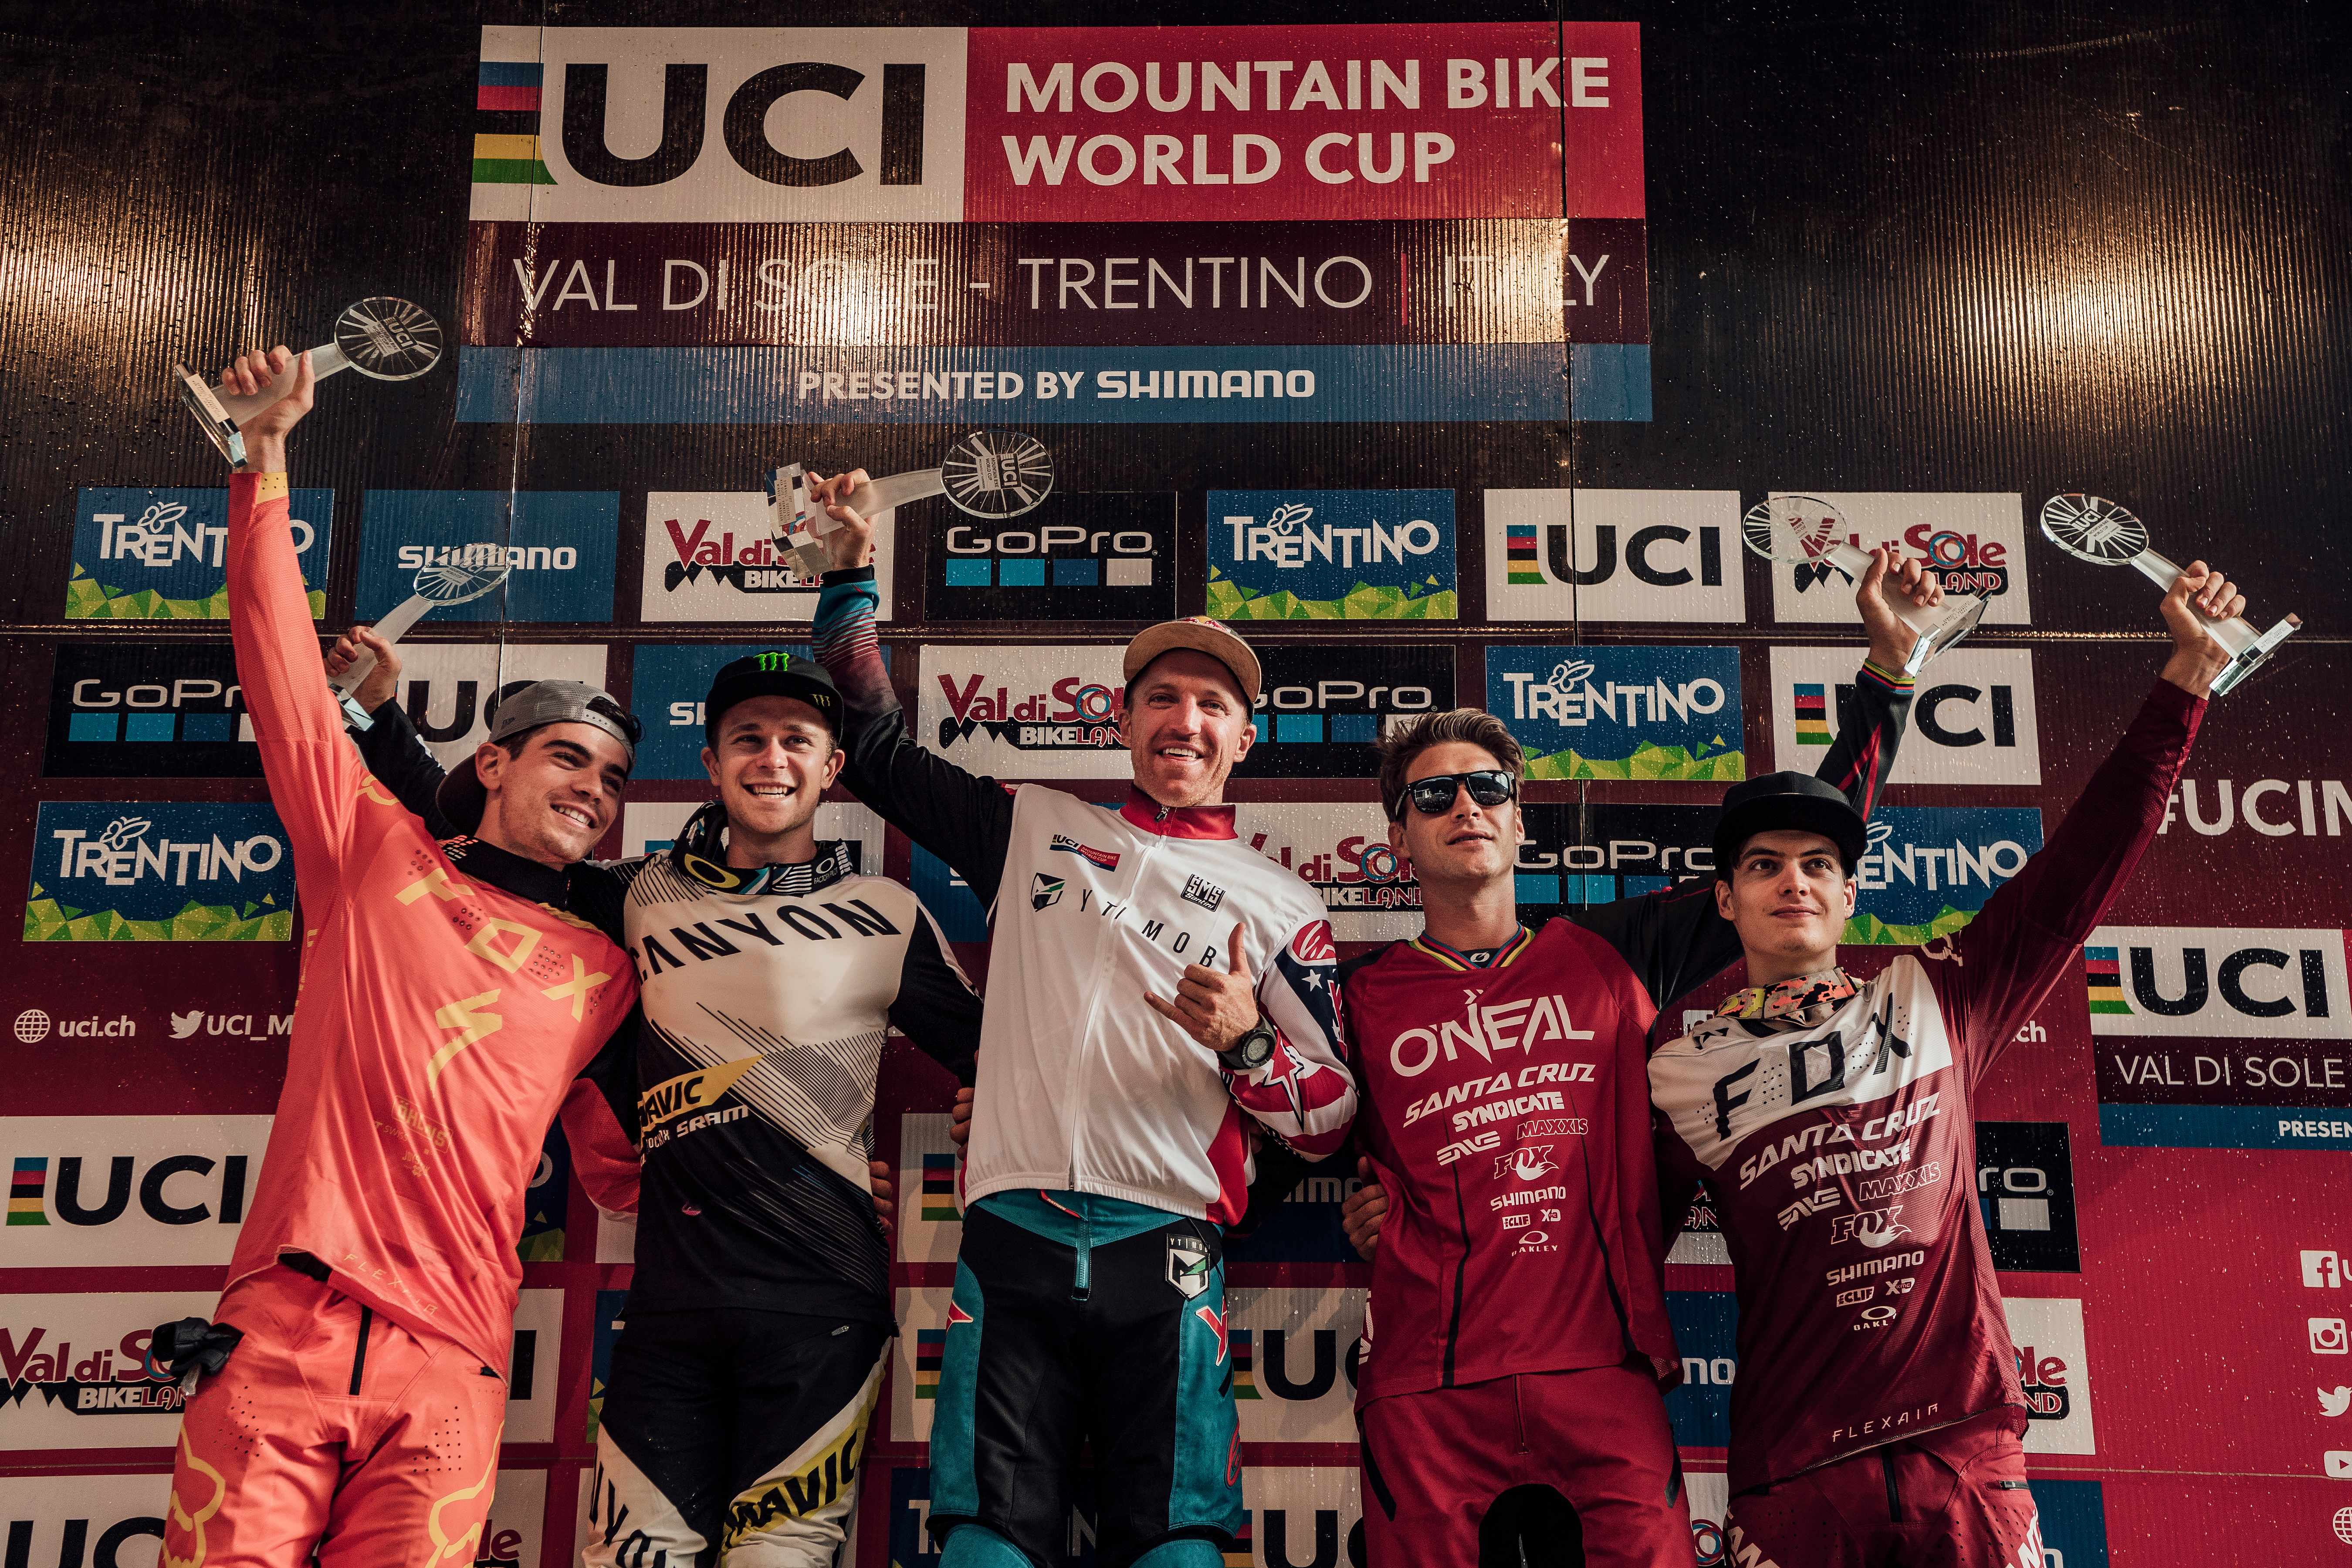 Mountain bike World Cup podium